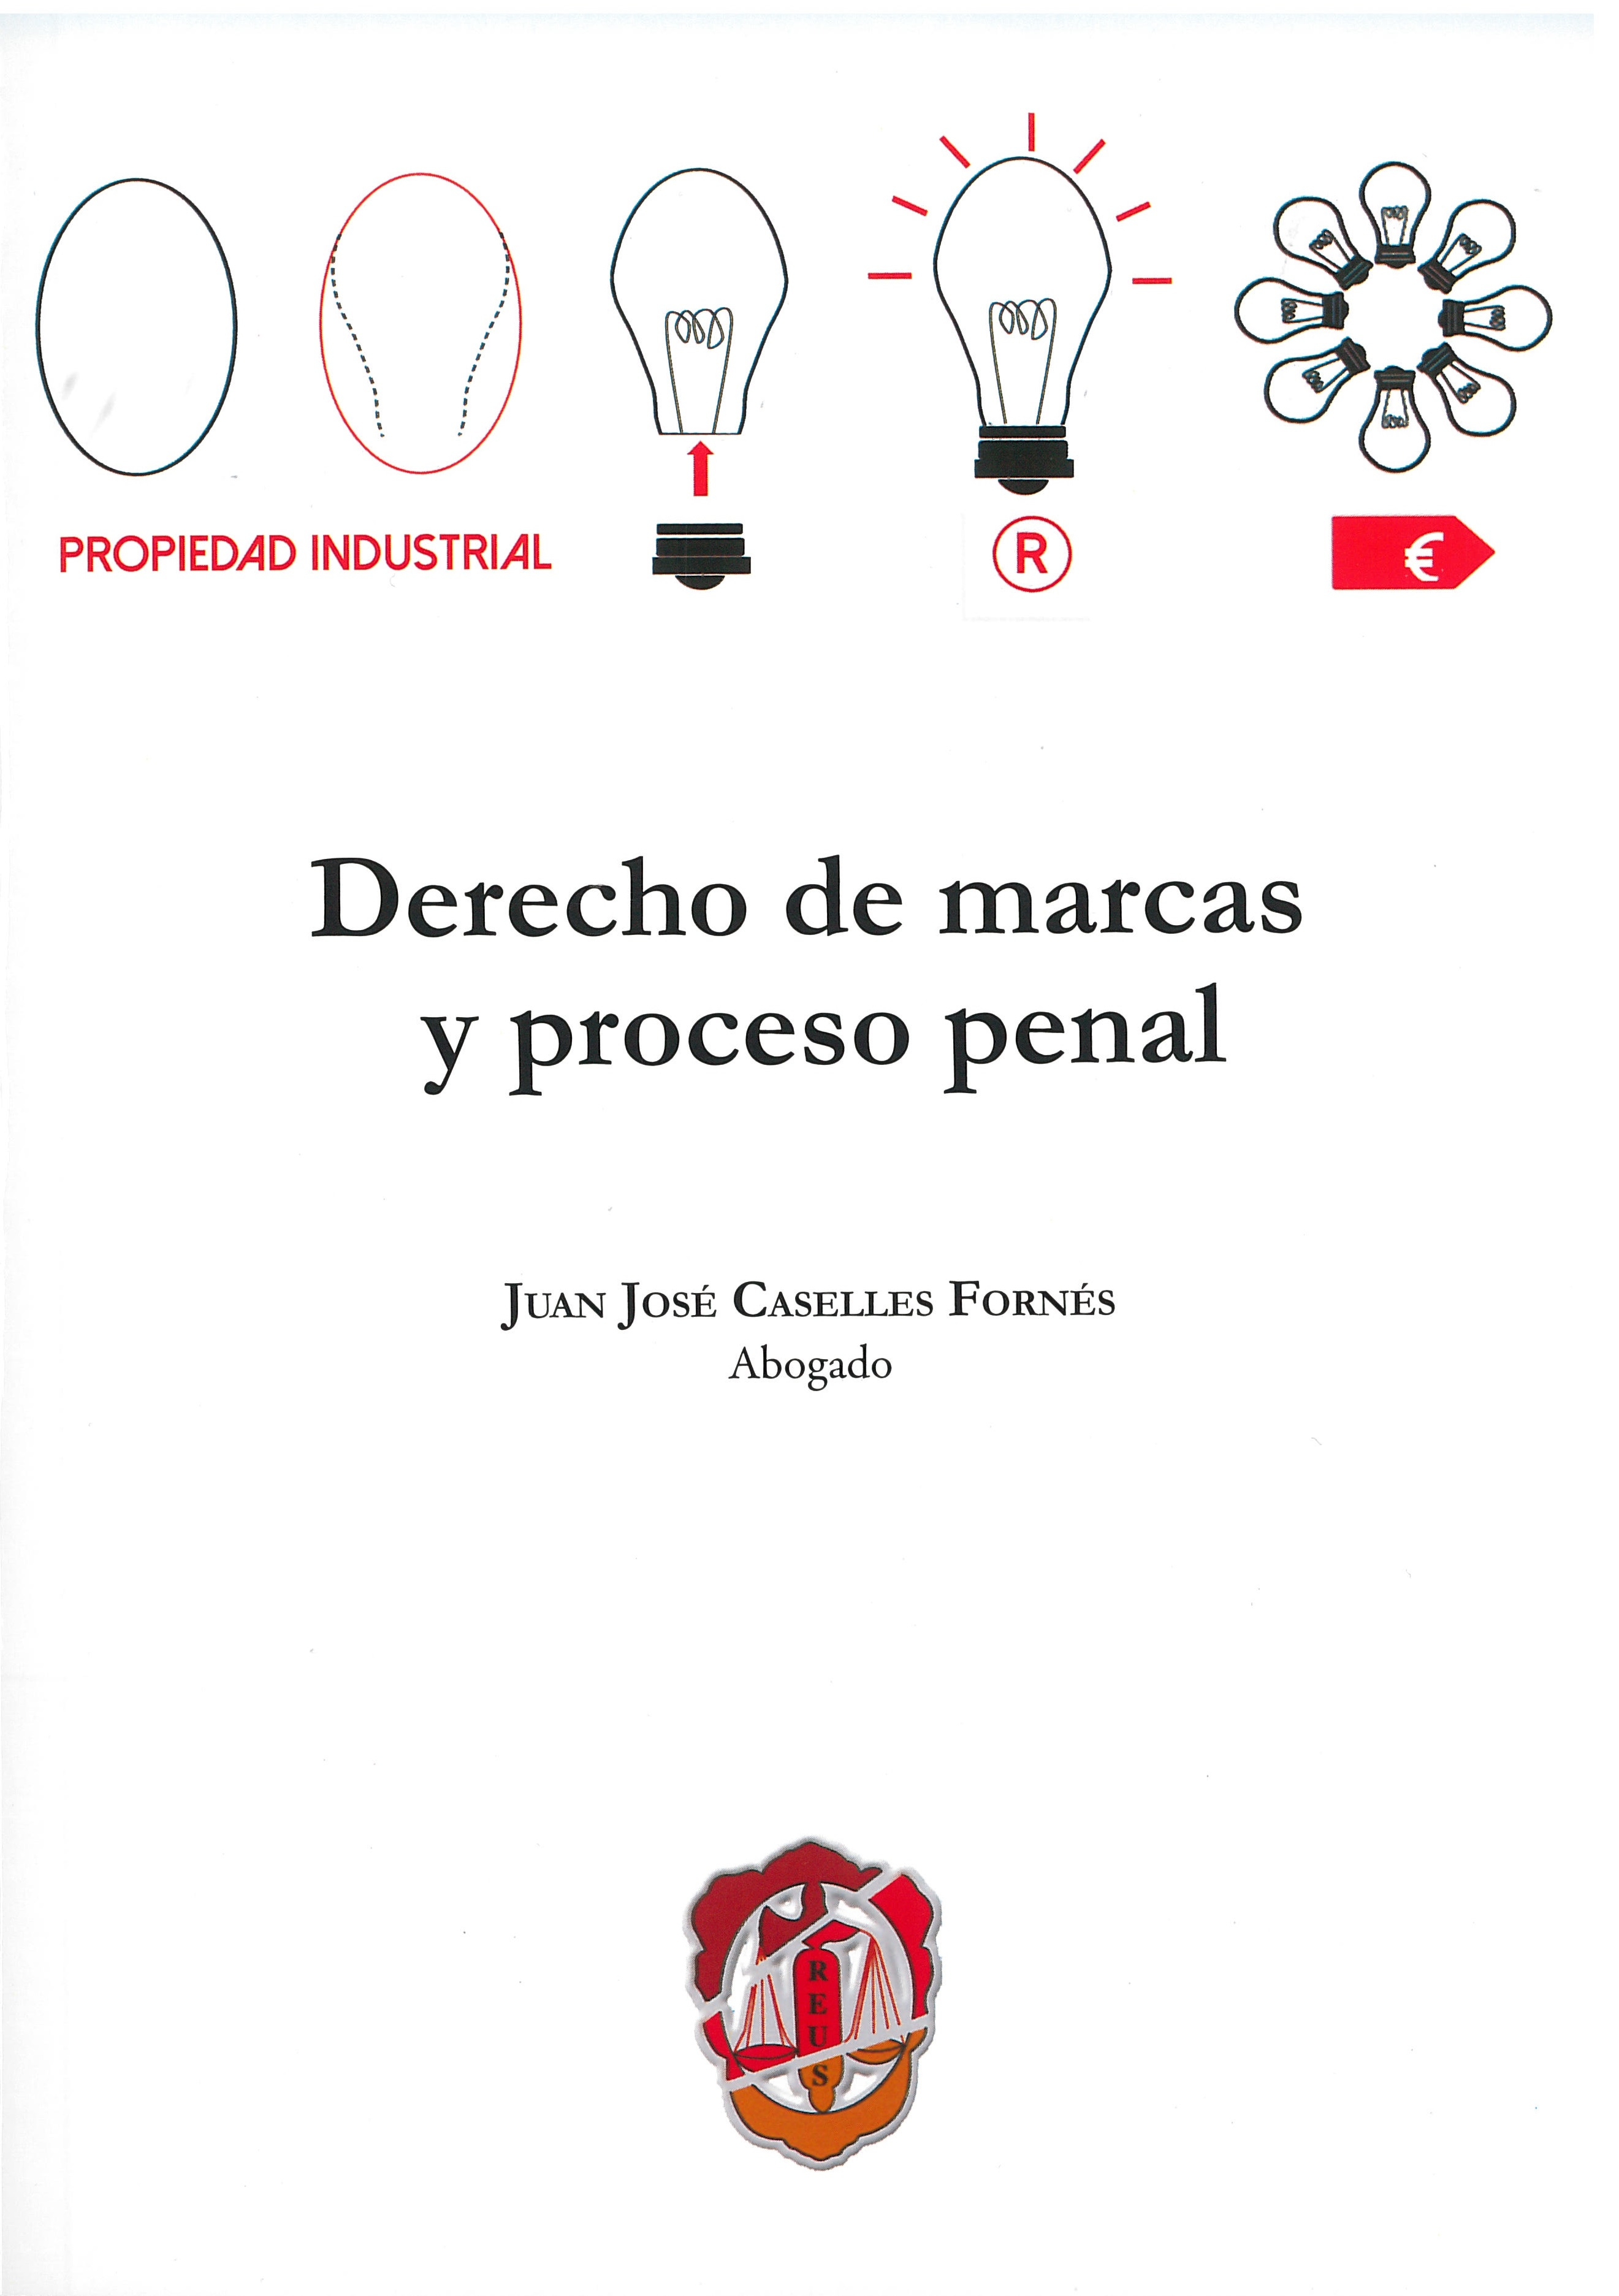 Nueva obra sobre Derecho de marcas y proceso penal = New publication about criminal proceeding and trademark law